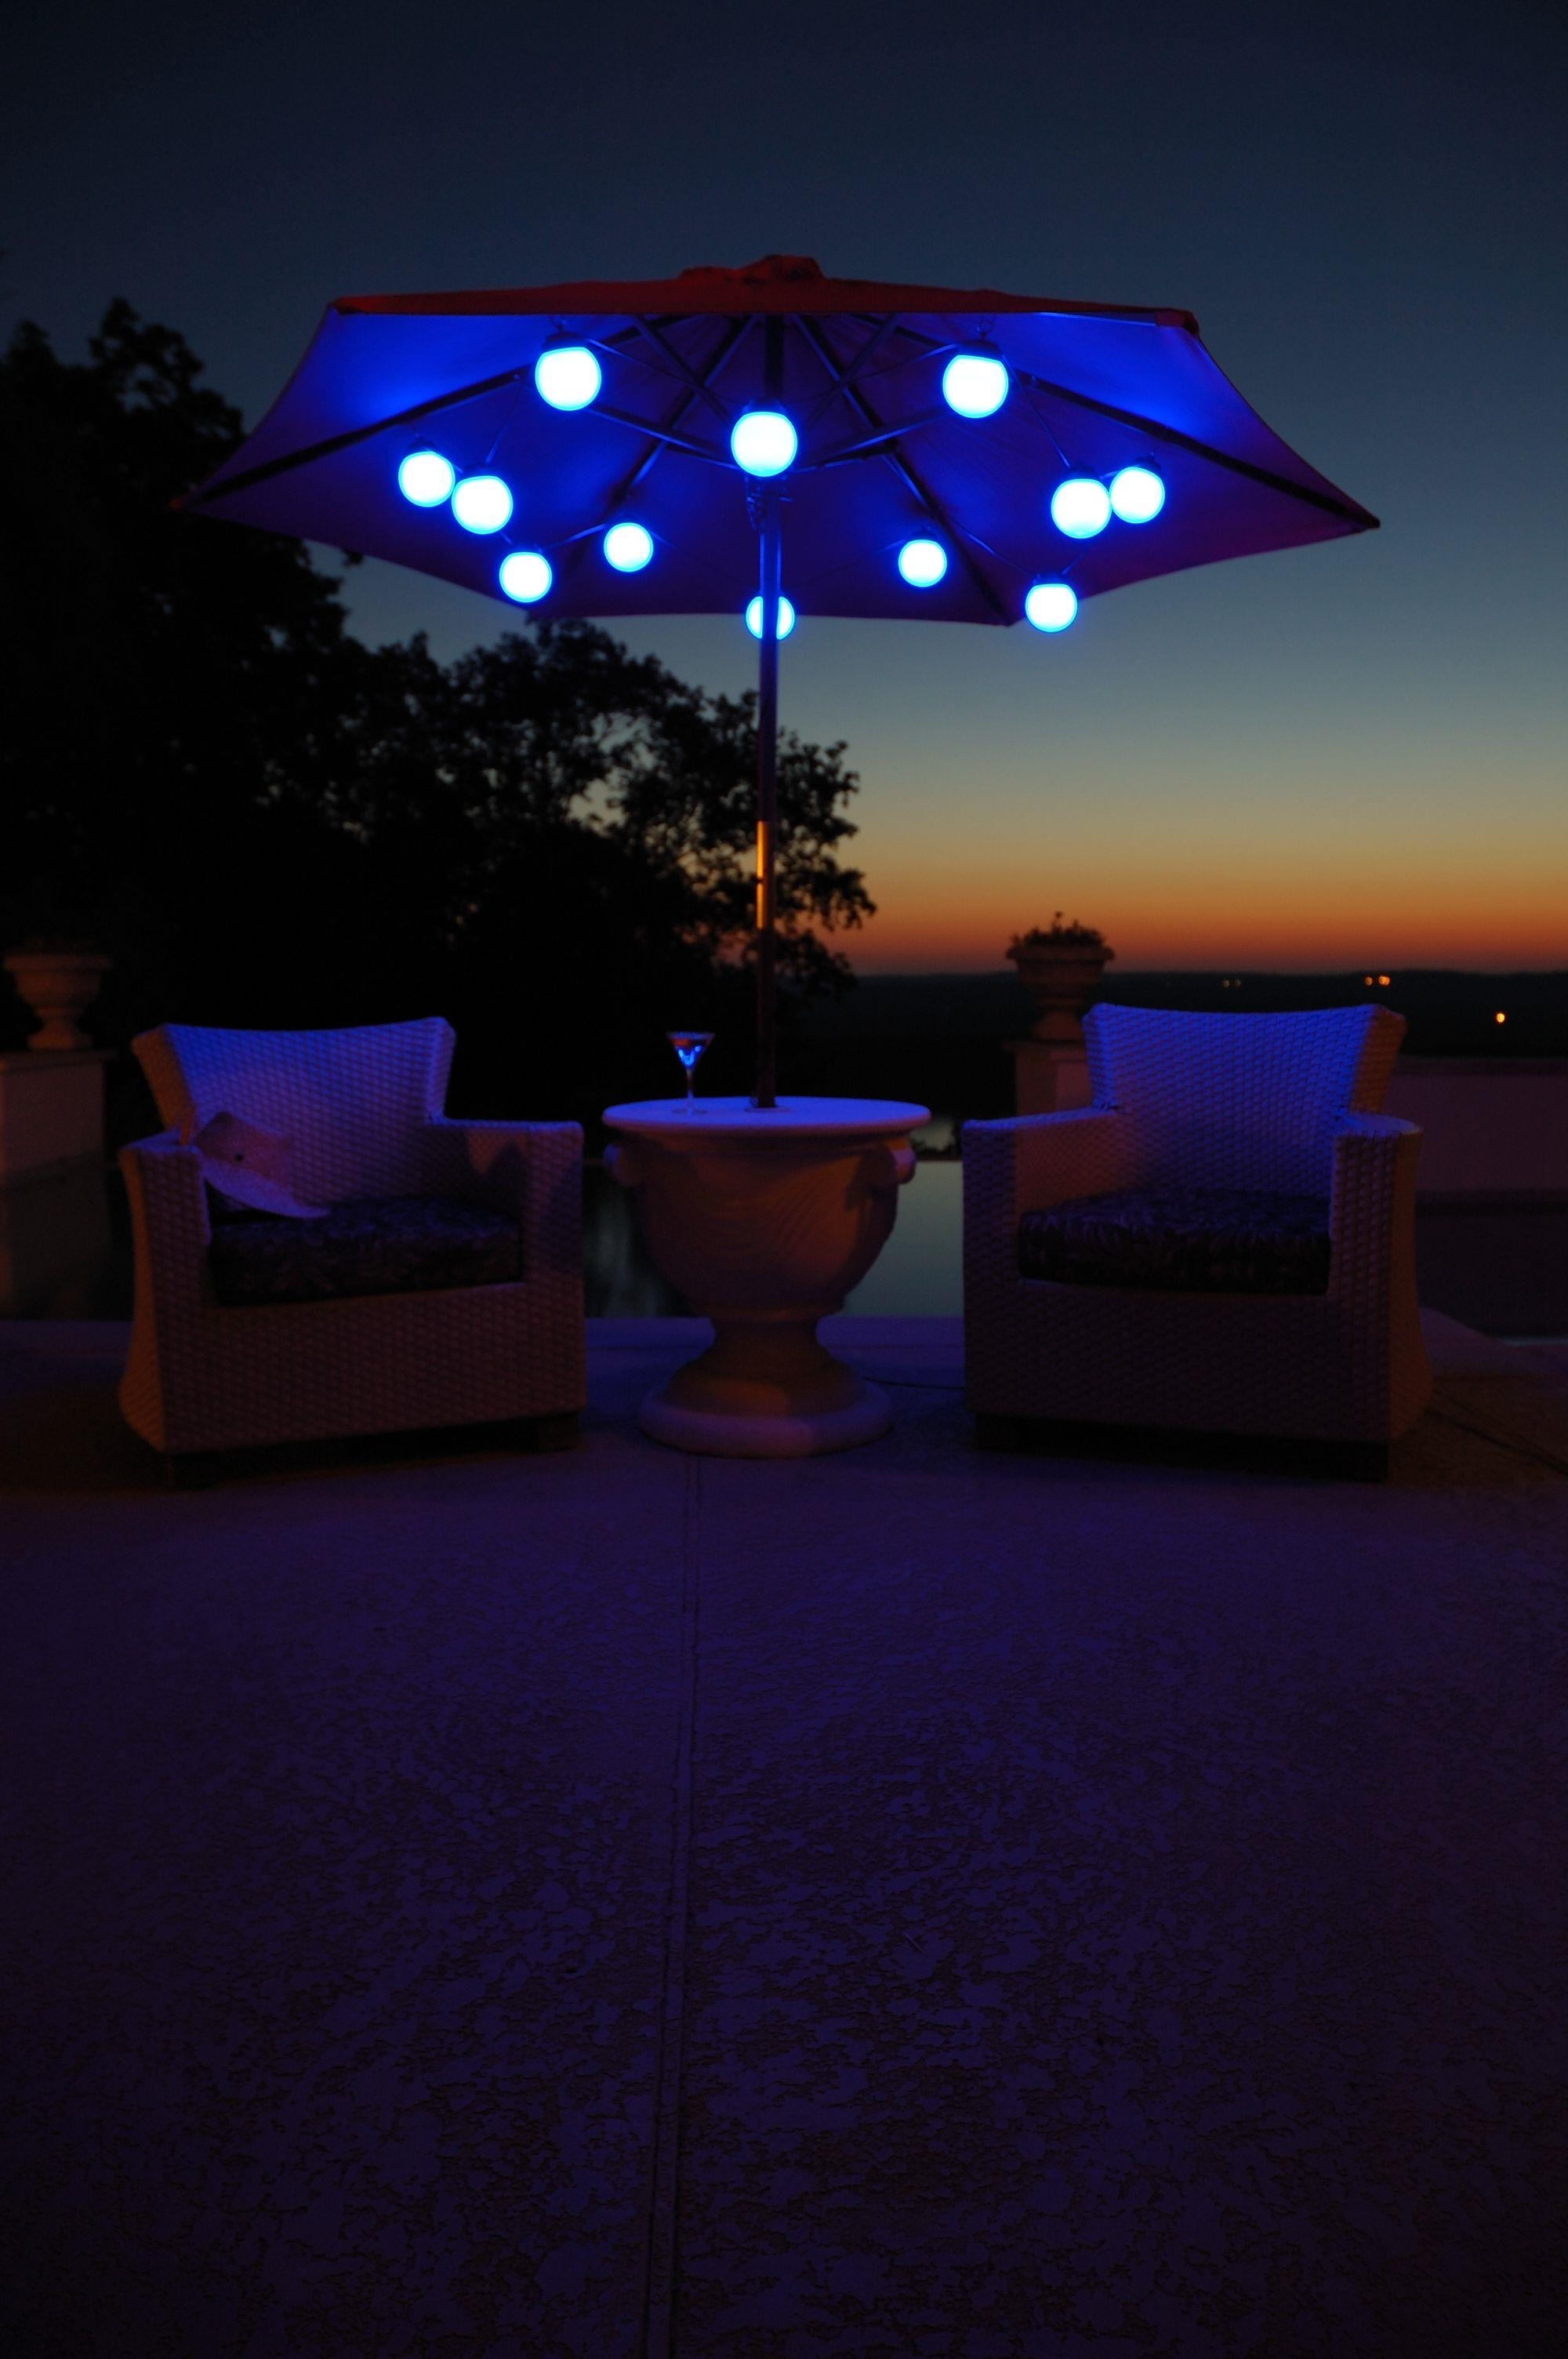 Well Known Patio Umbrellas With Led Lights Within 49 Lights For Patio Umbrella, Patio Umbrella Lights Umbrella Lights (View 19 of 20)